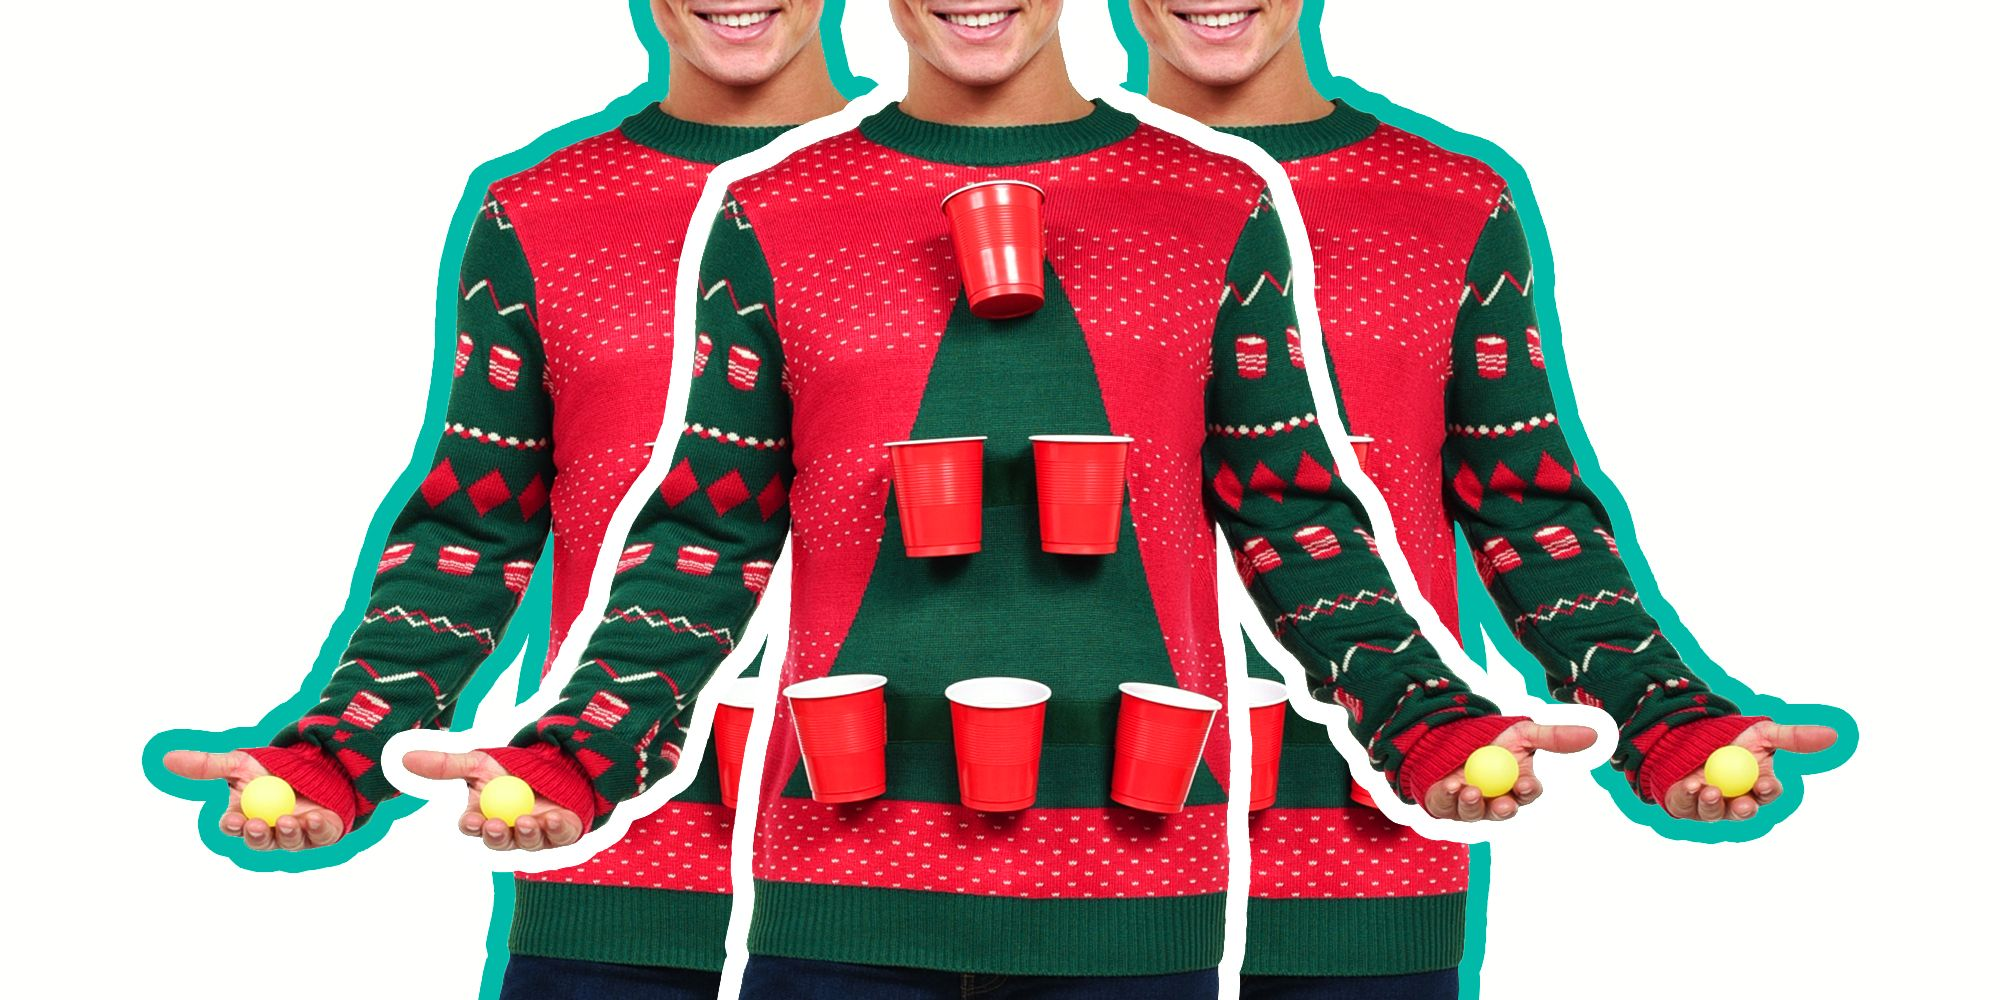 20 Best Ugly Christmas Sweaters to Wear in 2018 - Funny and Ugly ...